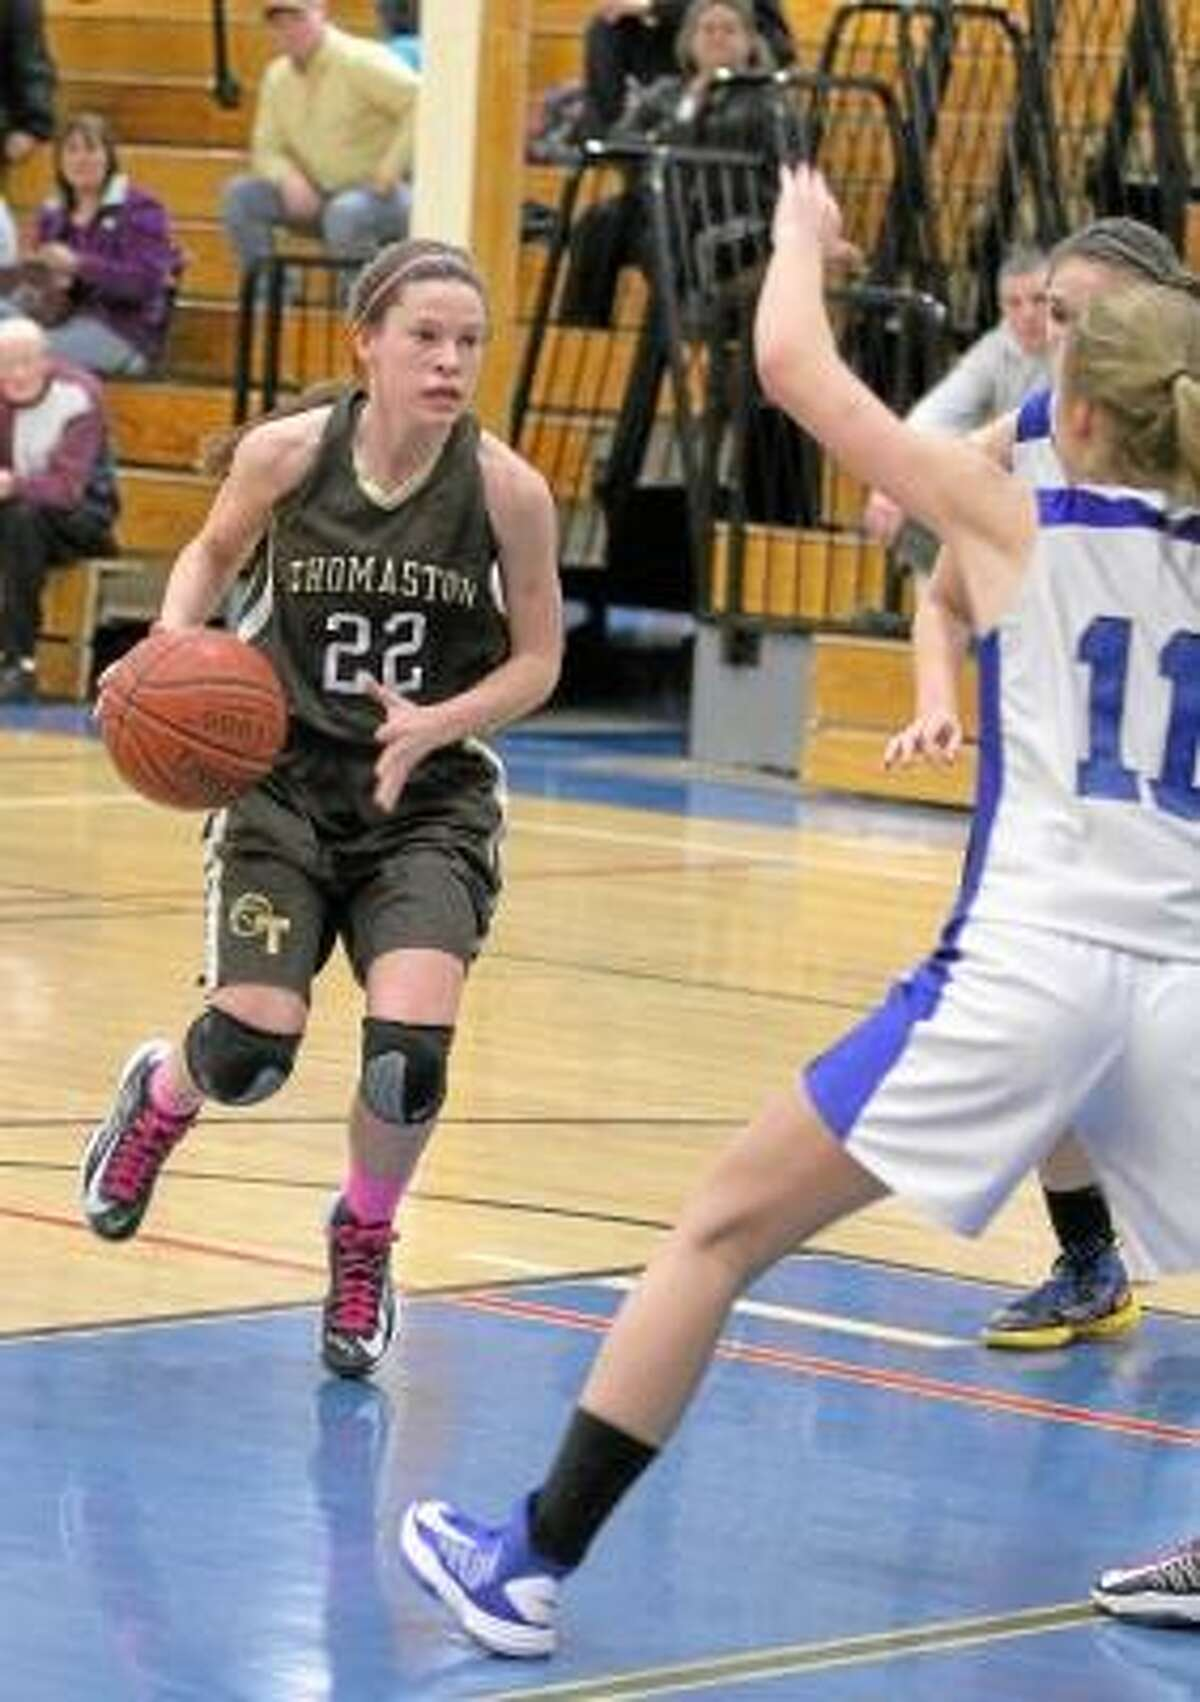 Thomaston's Maggie Eberhardt (22) looks to take a shot during her team's win over Lewis Mills Wednesday night. Photo by Marianne Killackey/Special to Register Citizen